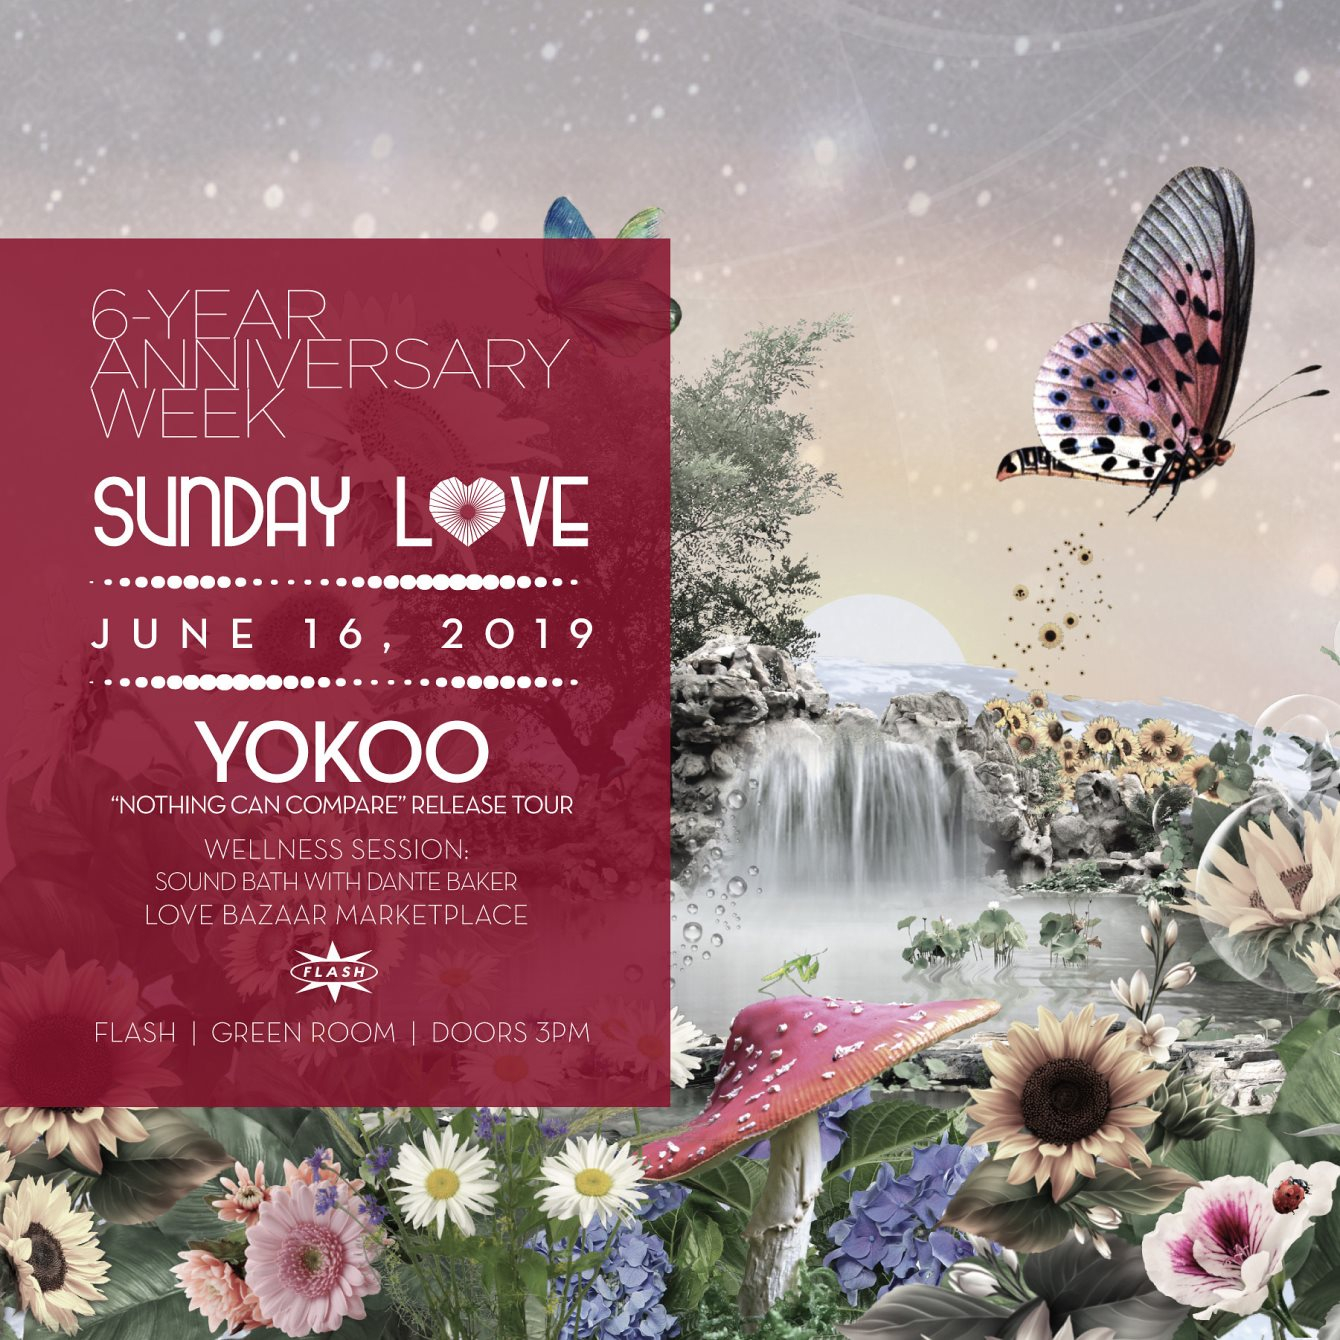 """Flash 6-Yr Anniv x Sunday Love: YokoO """"Nothing Can Compare"""" Release Tour - Flyer back"""